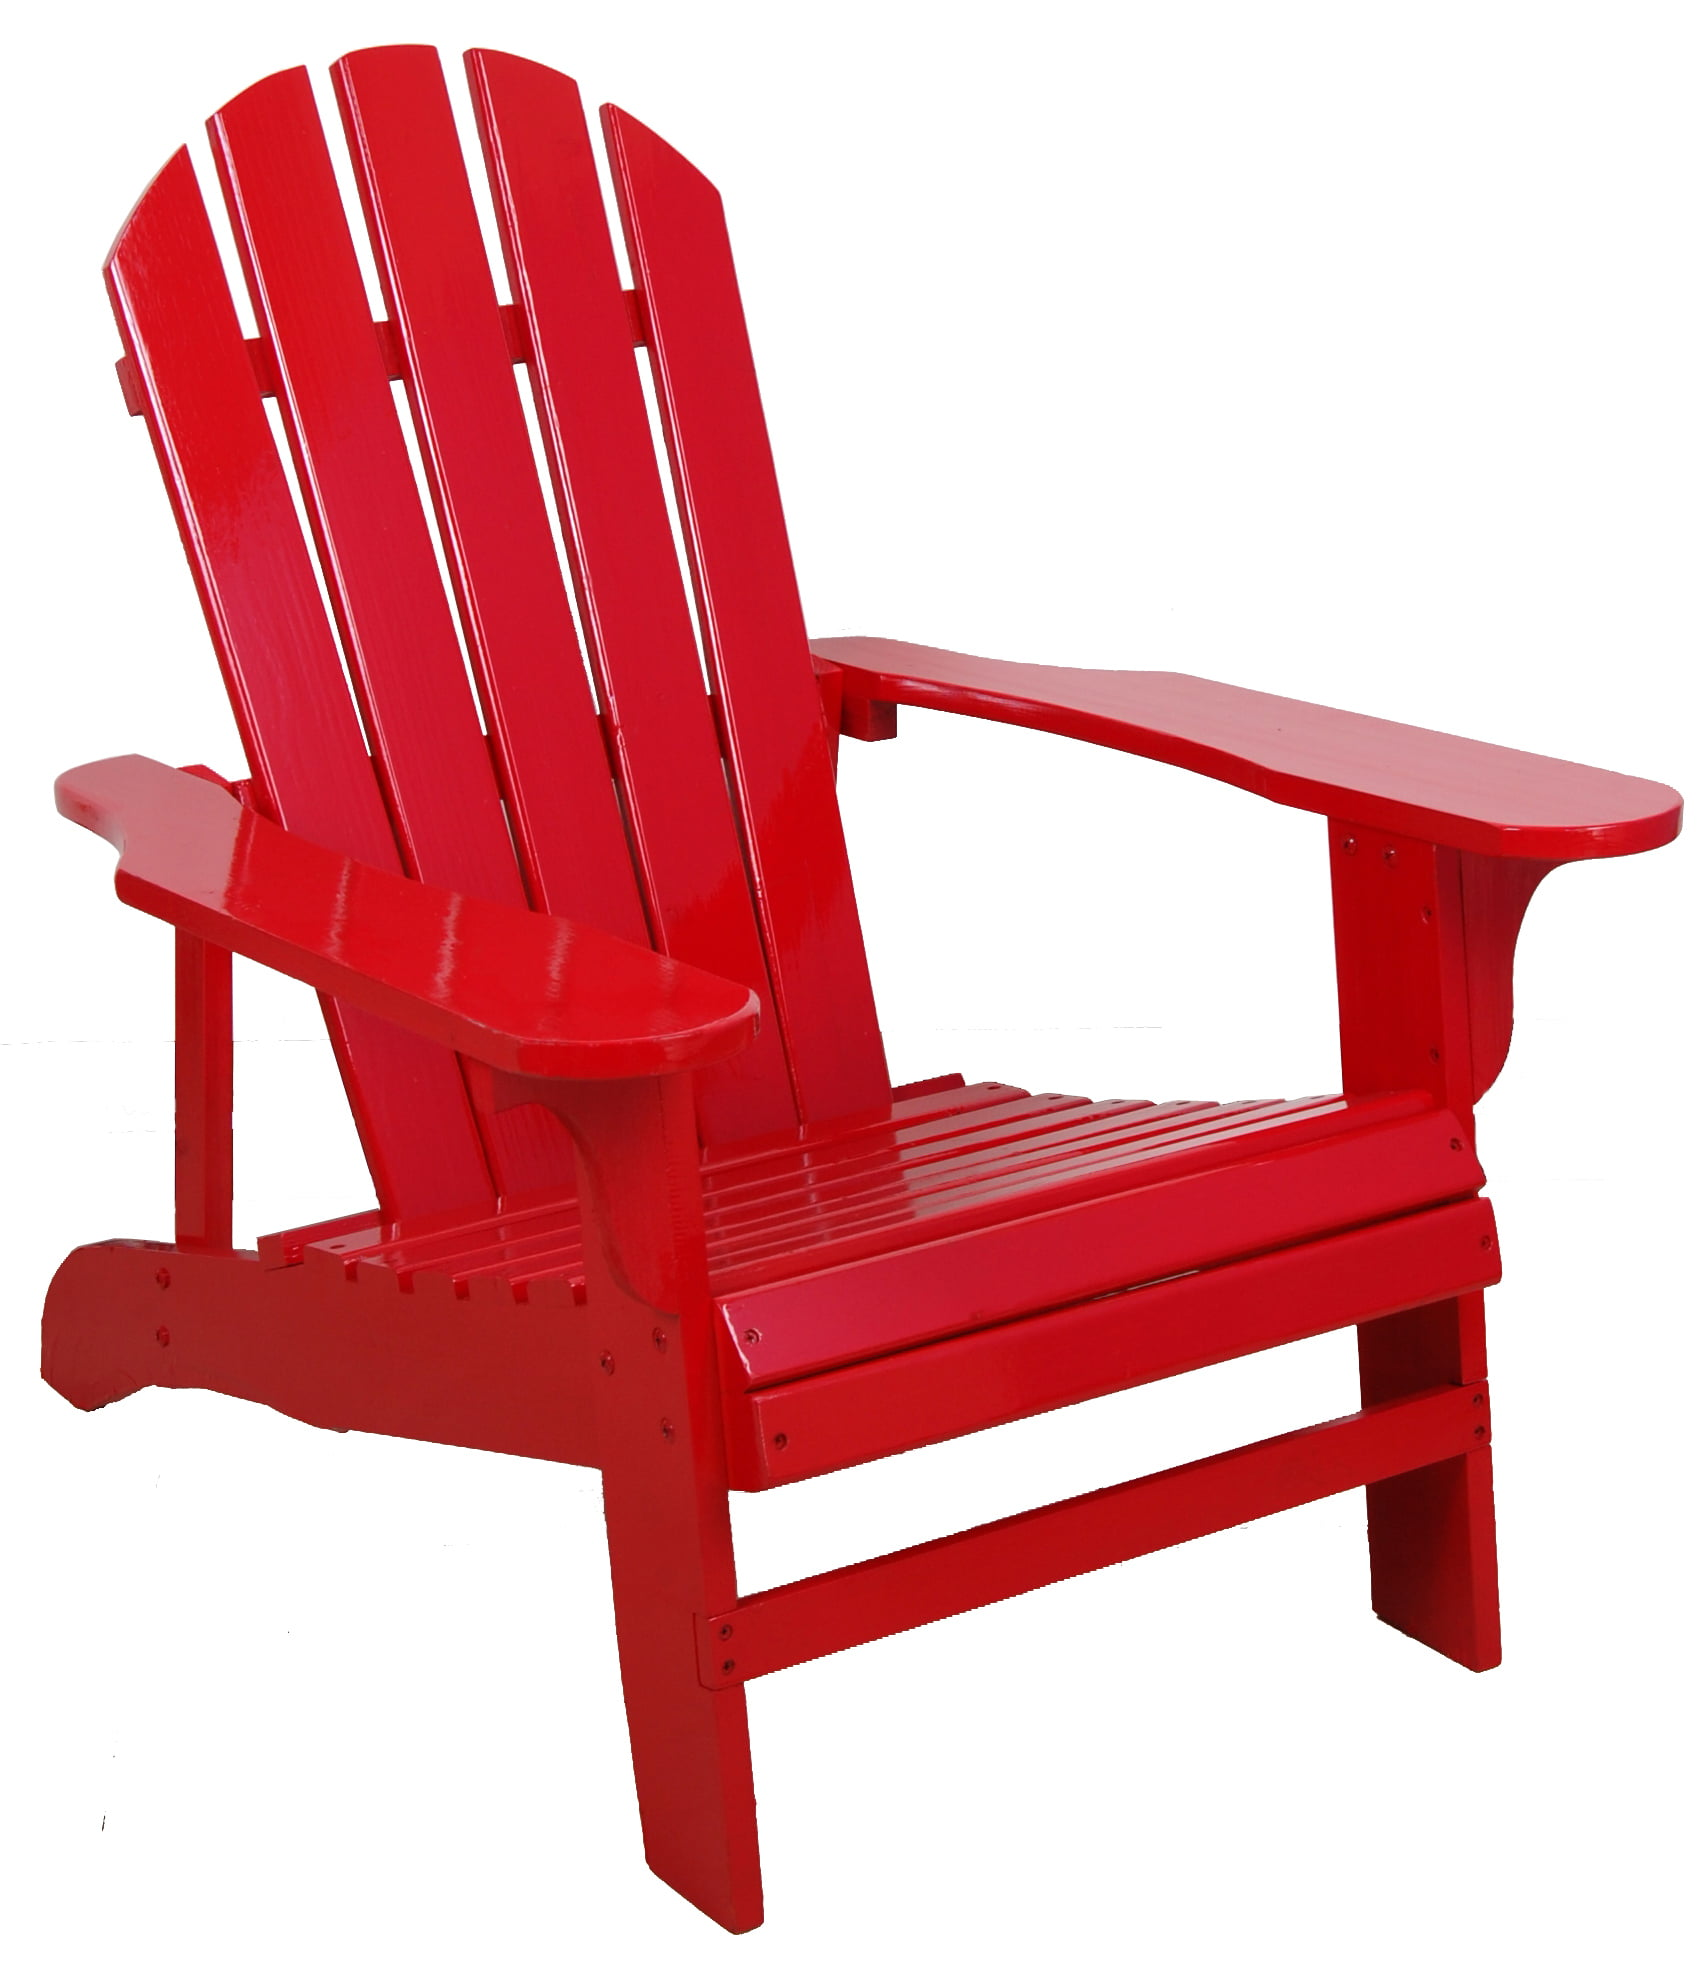 Red Adirondack Chair by United General Supply CO., INC